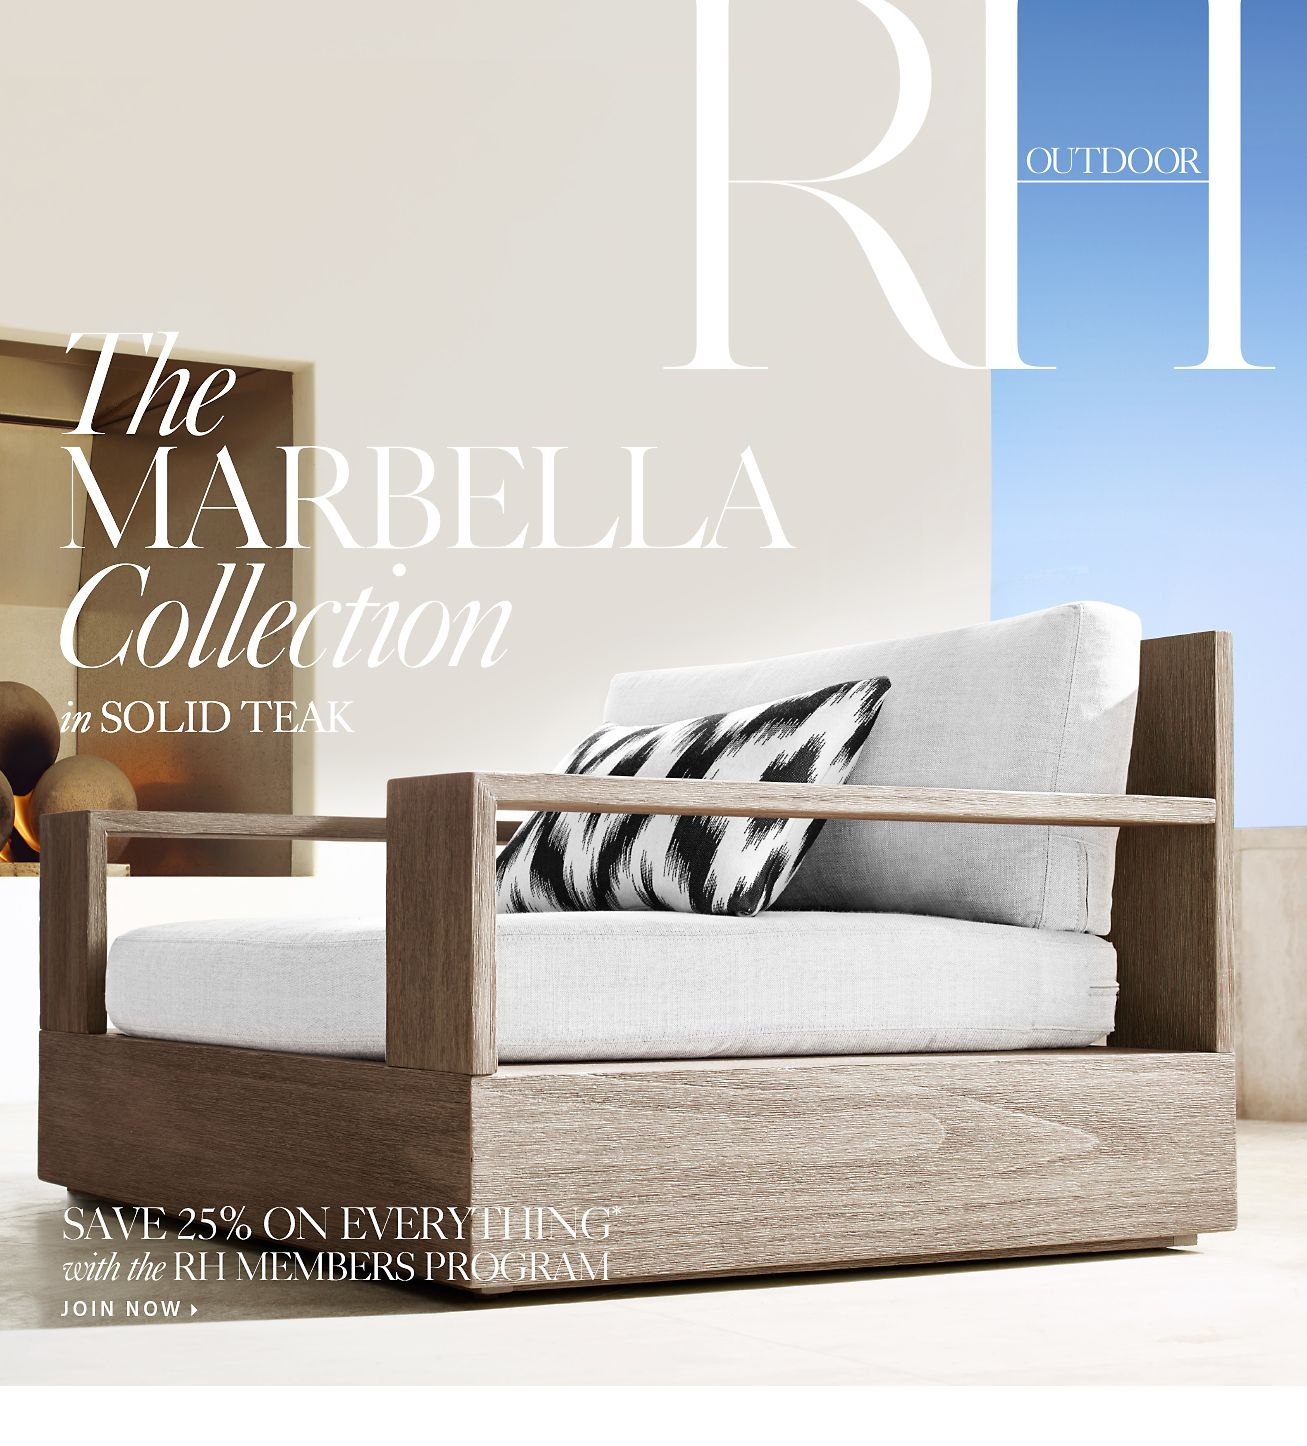 The Marbella Collection